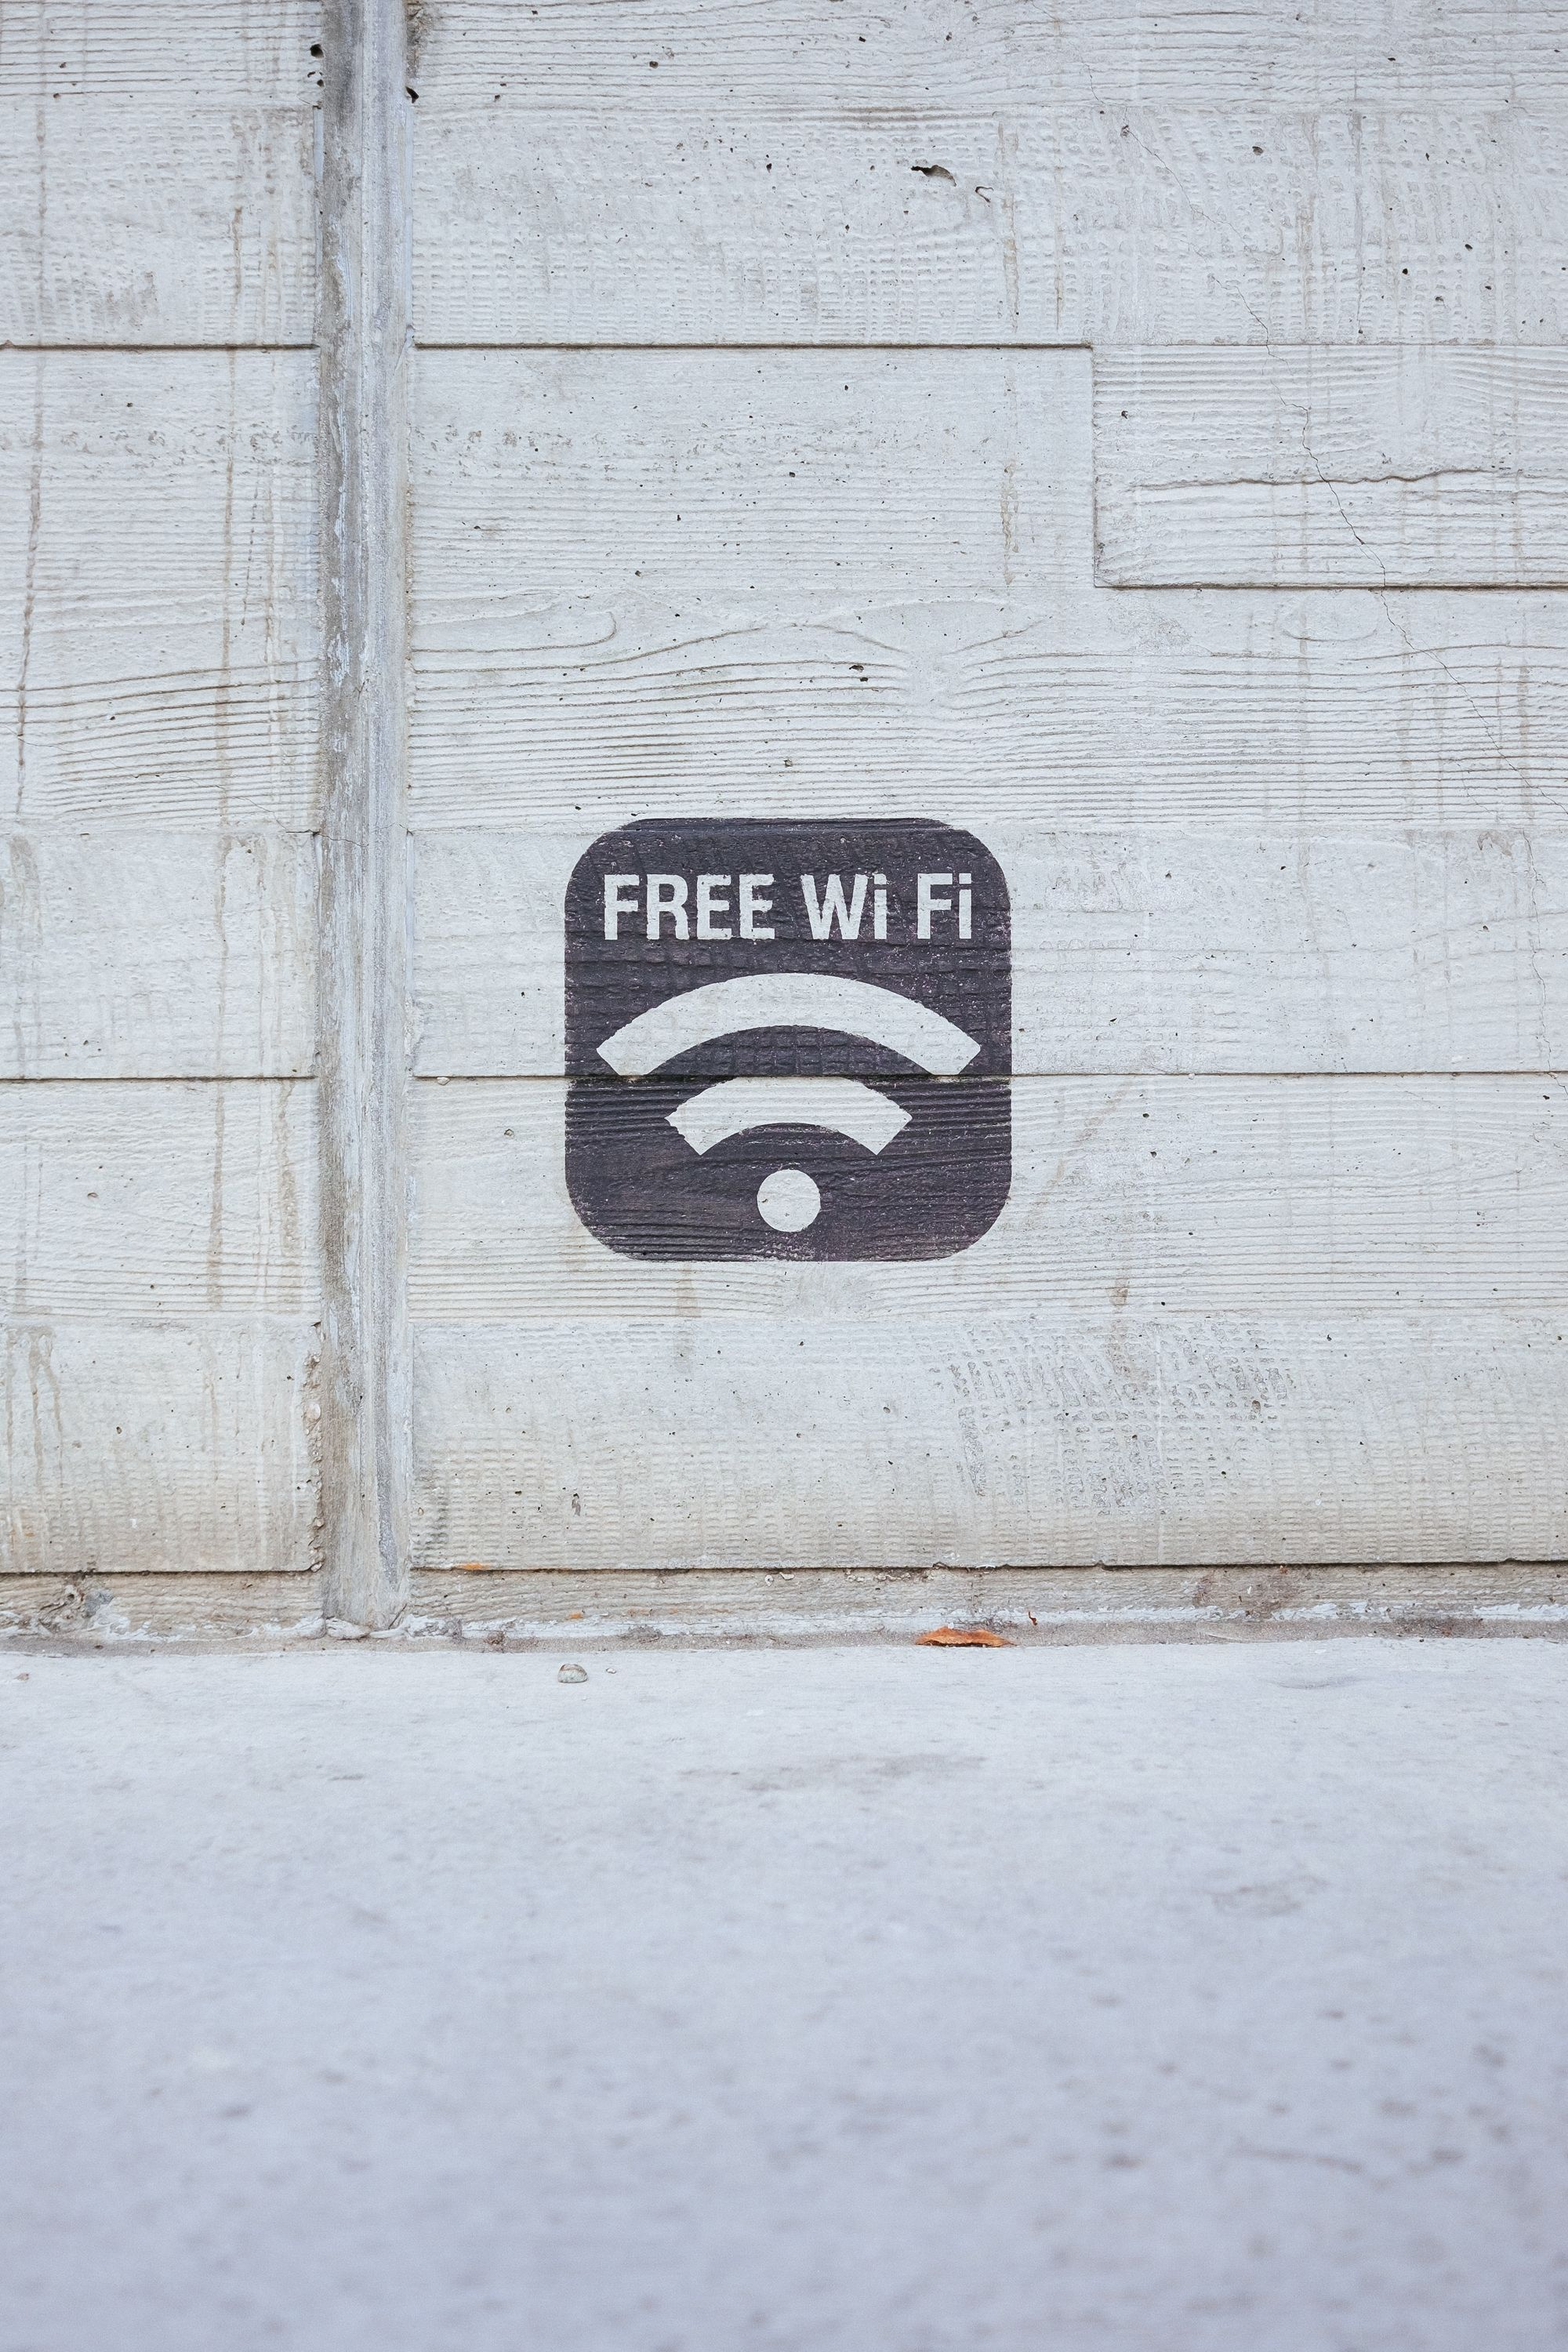 All you really need today to work is Wi-Fi (Free Wi-Fi preferably).